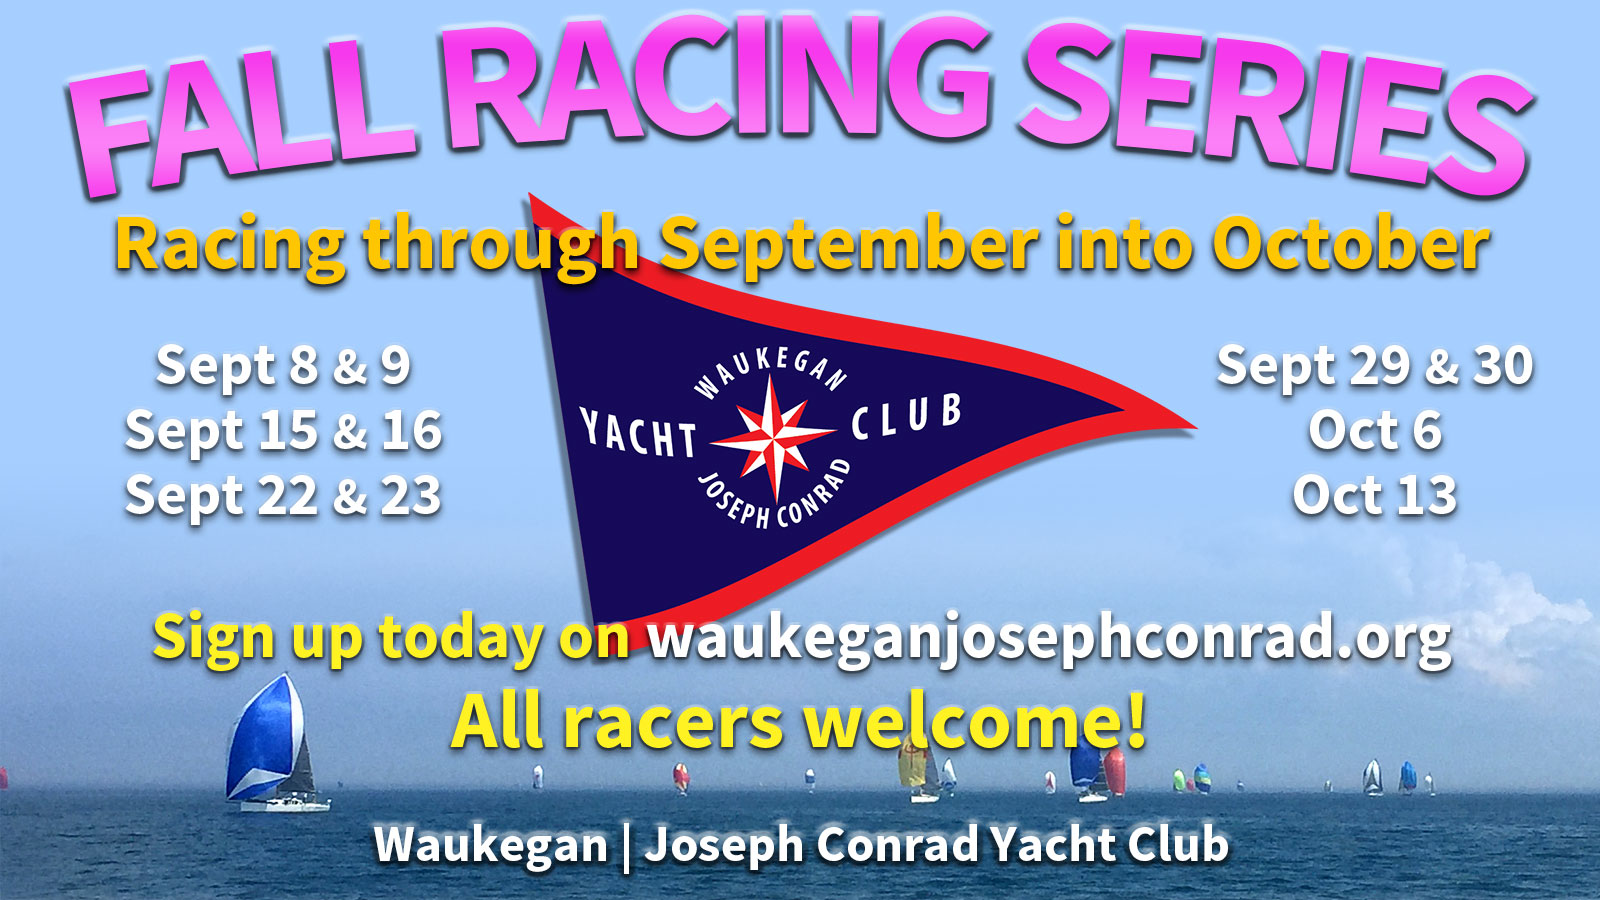 fall racing series poster